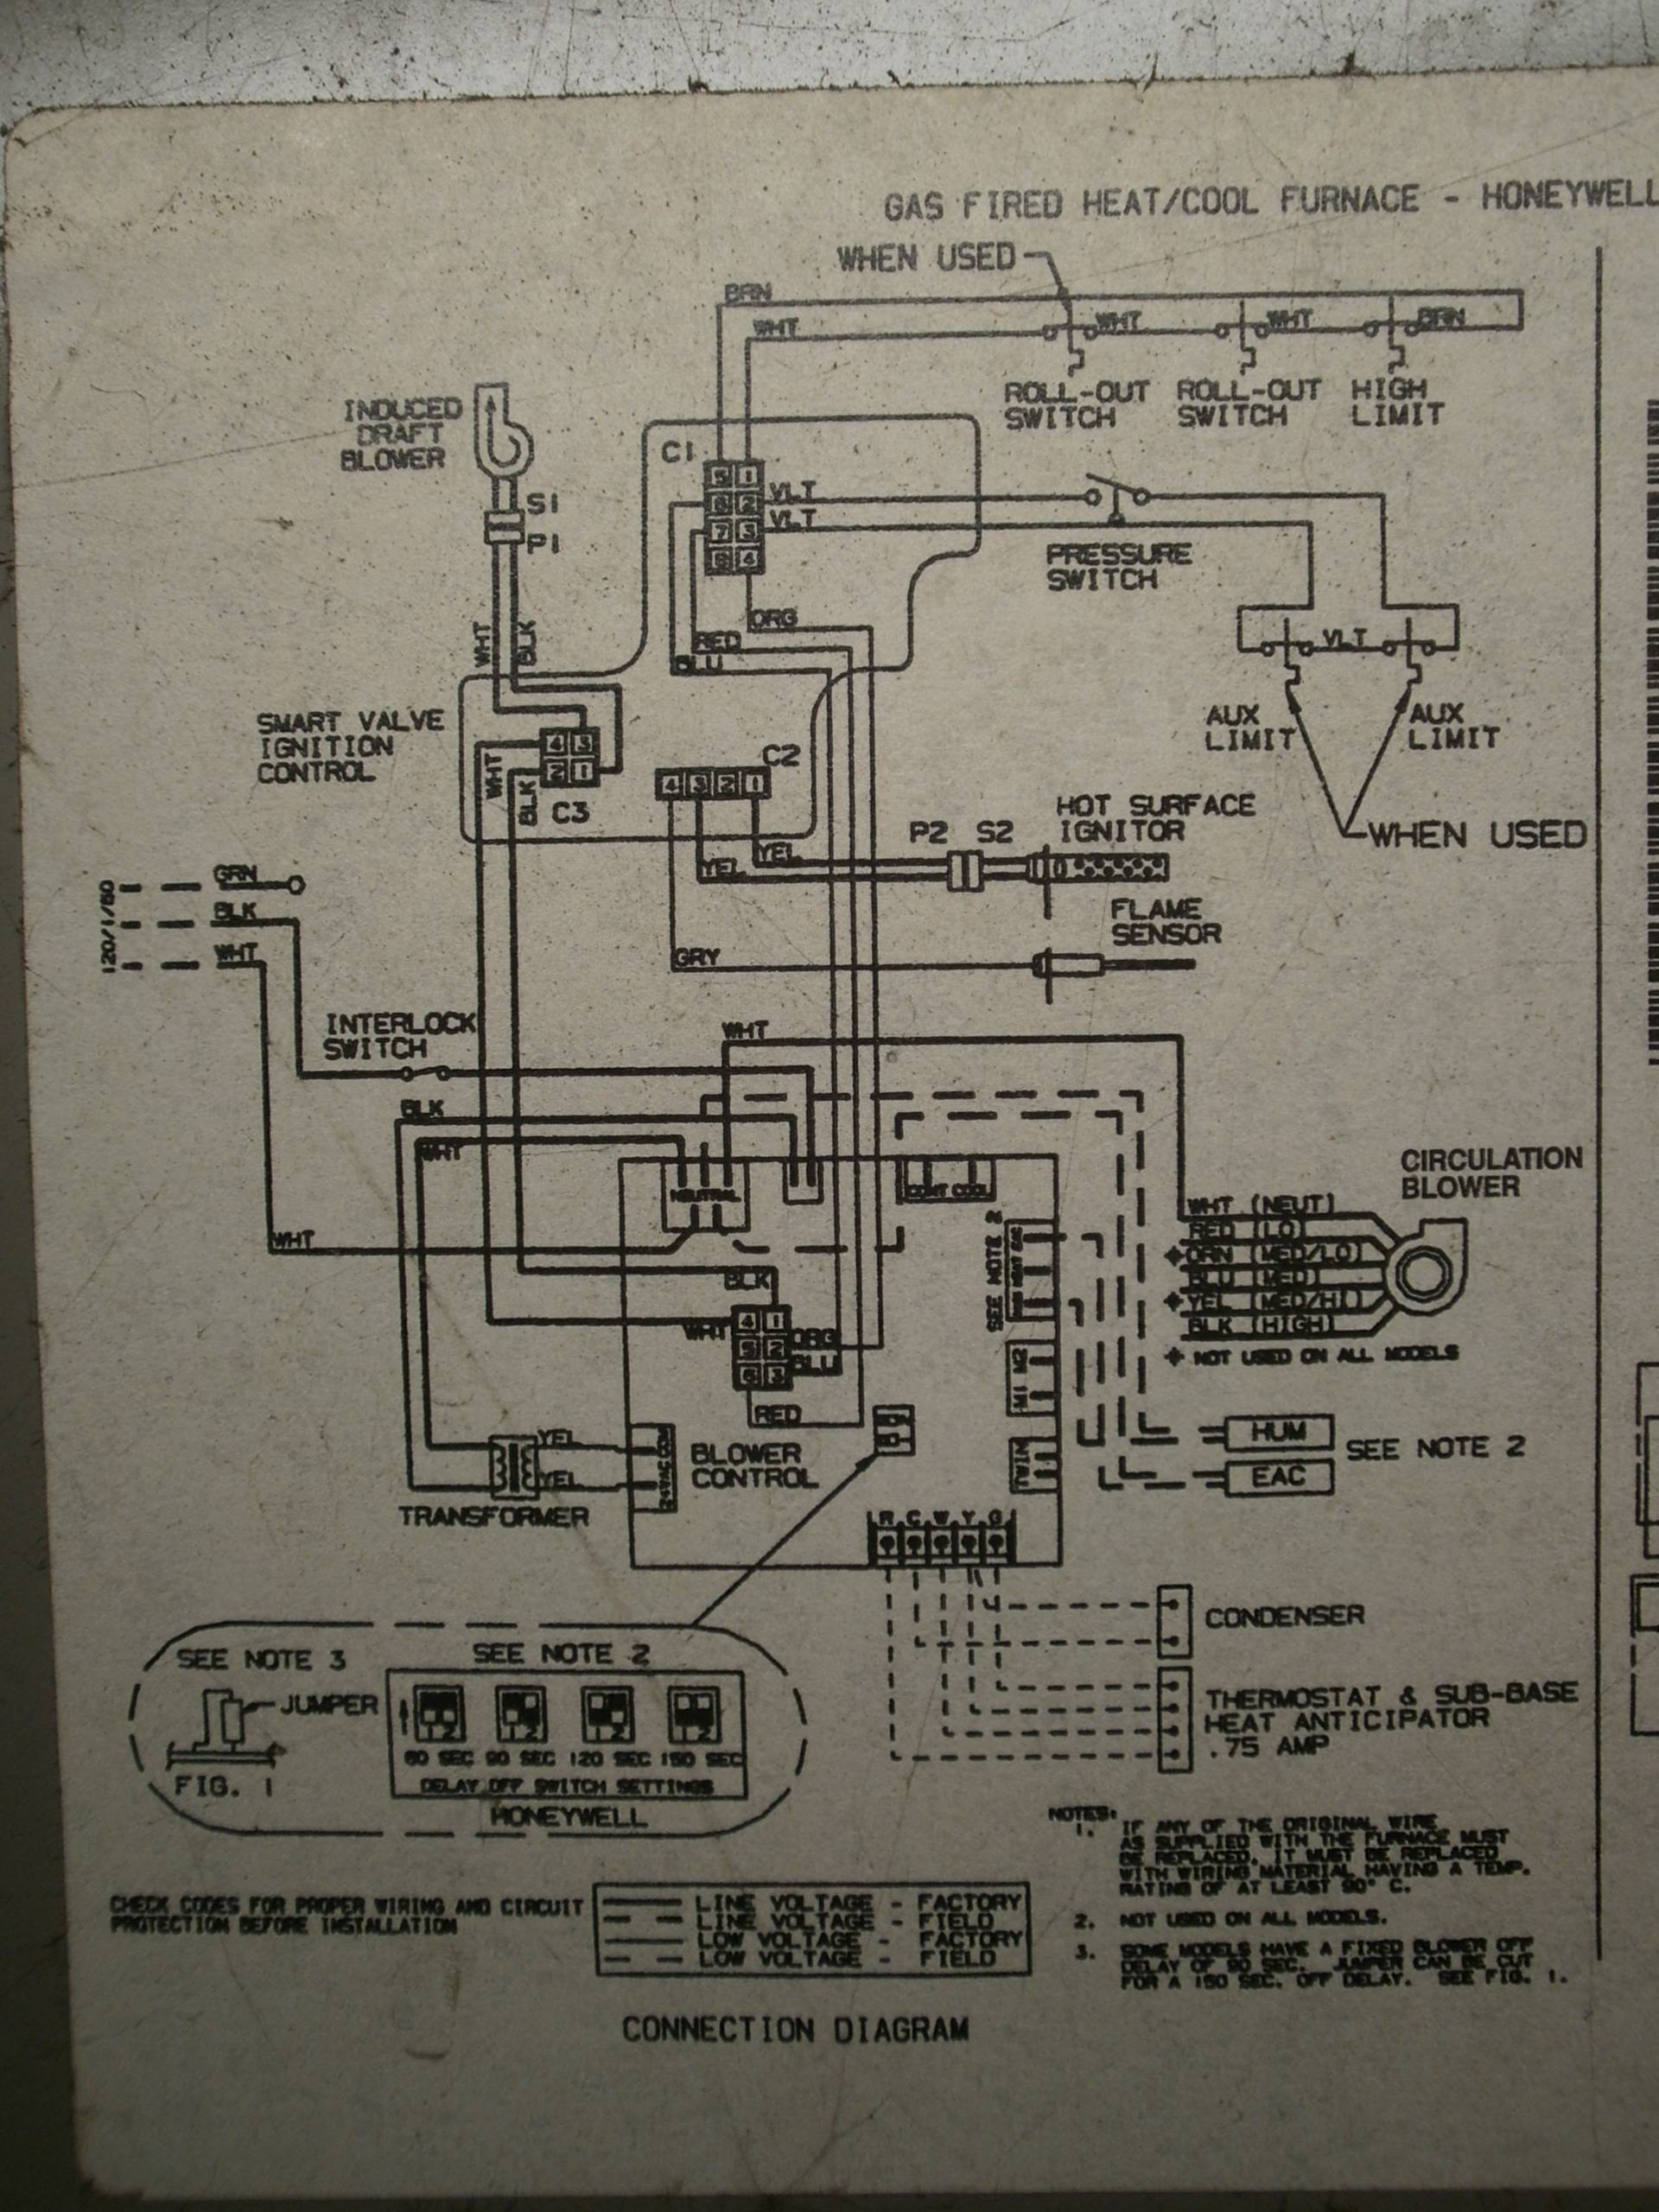 Home Air Conditioner Wont Turn Off